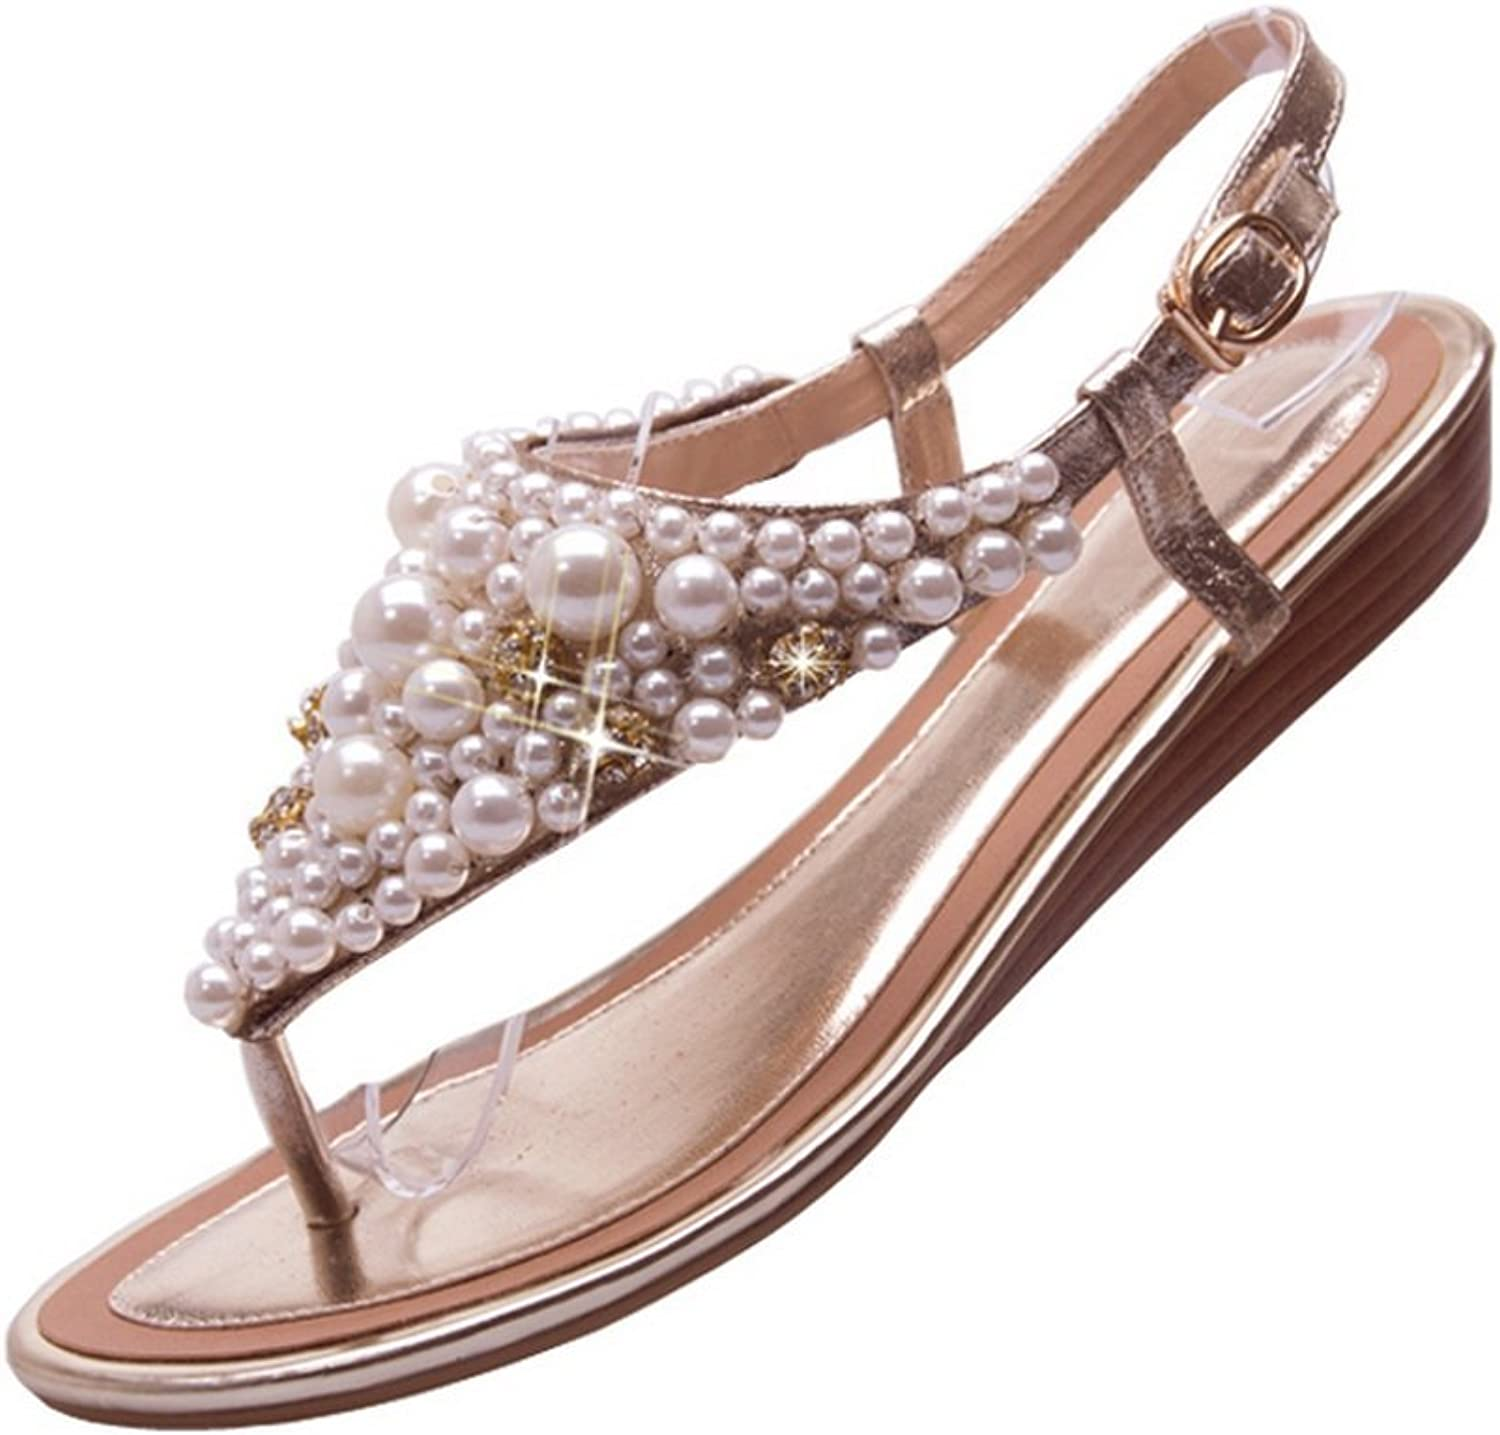 1TO9 Womens Bead Toepost Style gold Soft Material Sandals - 7.5 B(M) US